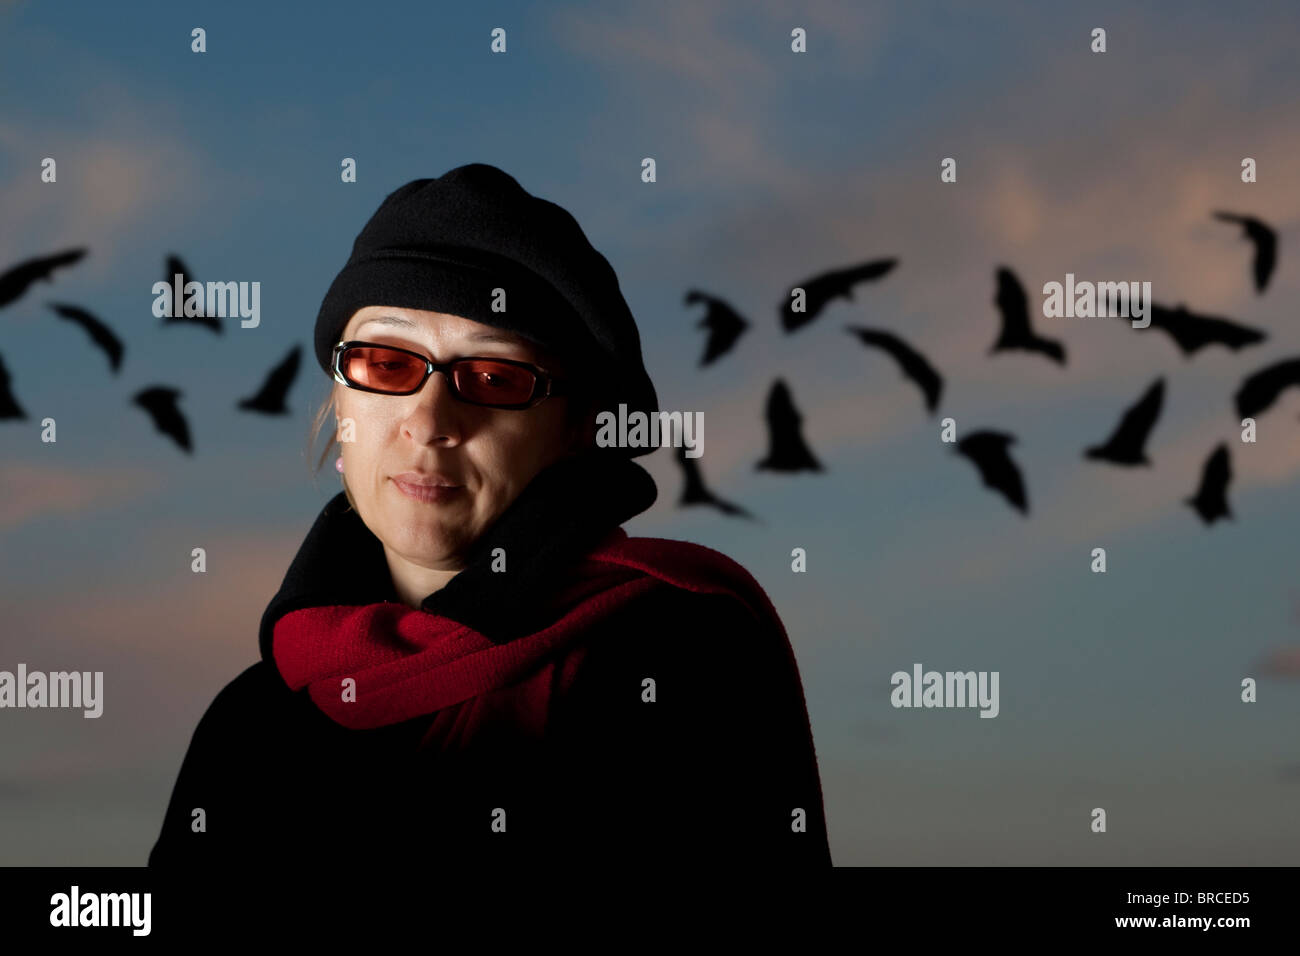 The lonely woman against the dark sky and bats - Stock Image